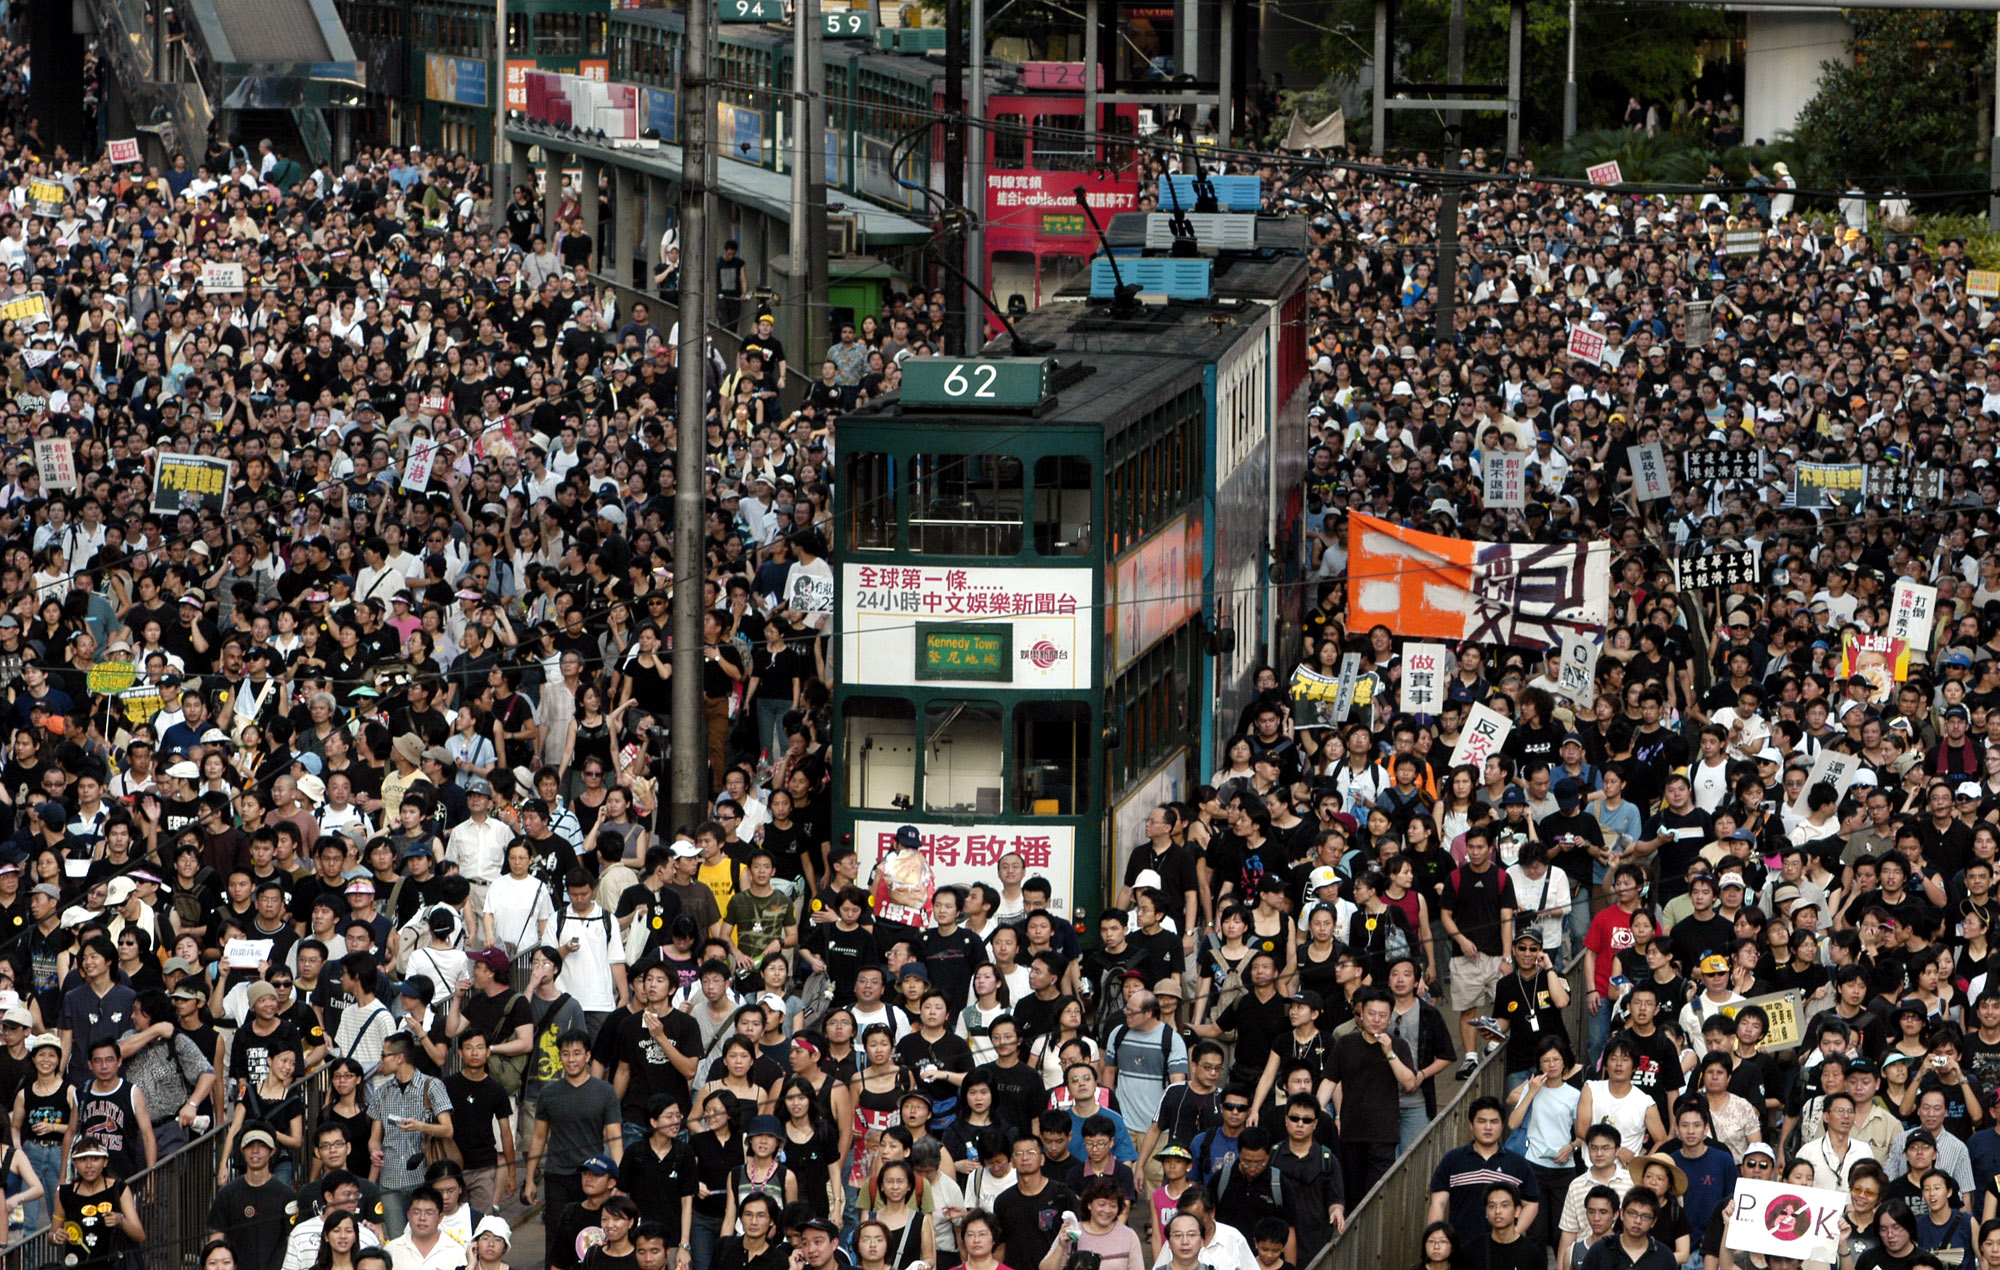 Tens of thousands of people pack a Hong Kong street while marching to Hong Kong government headquarters on July 1, 2003.